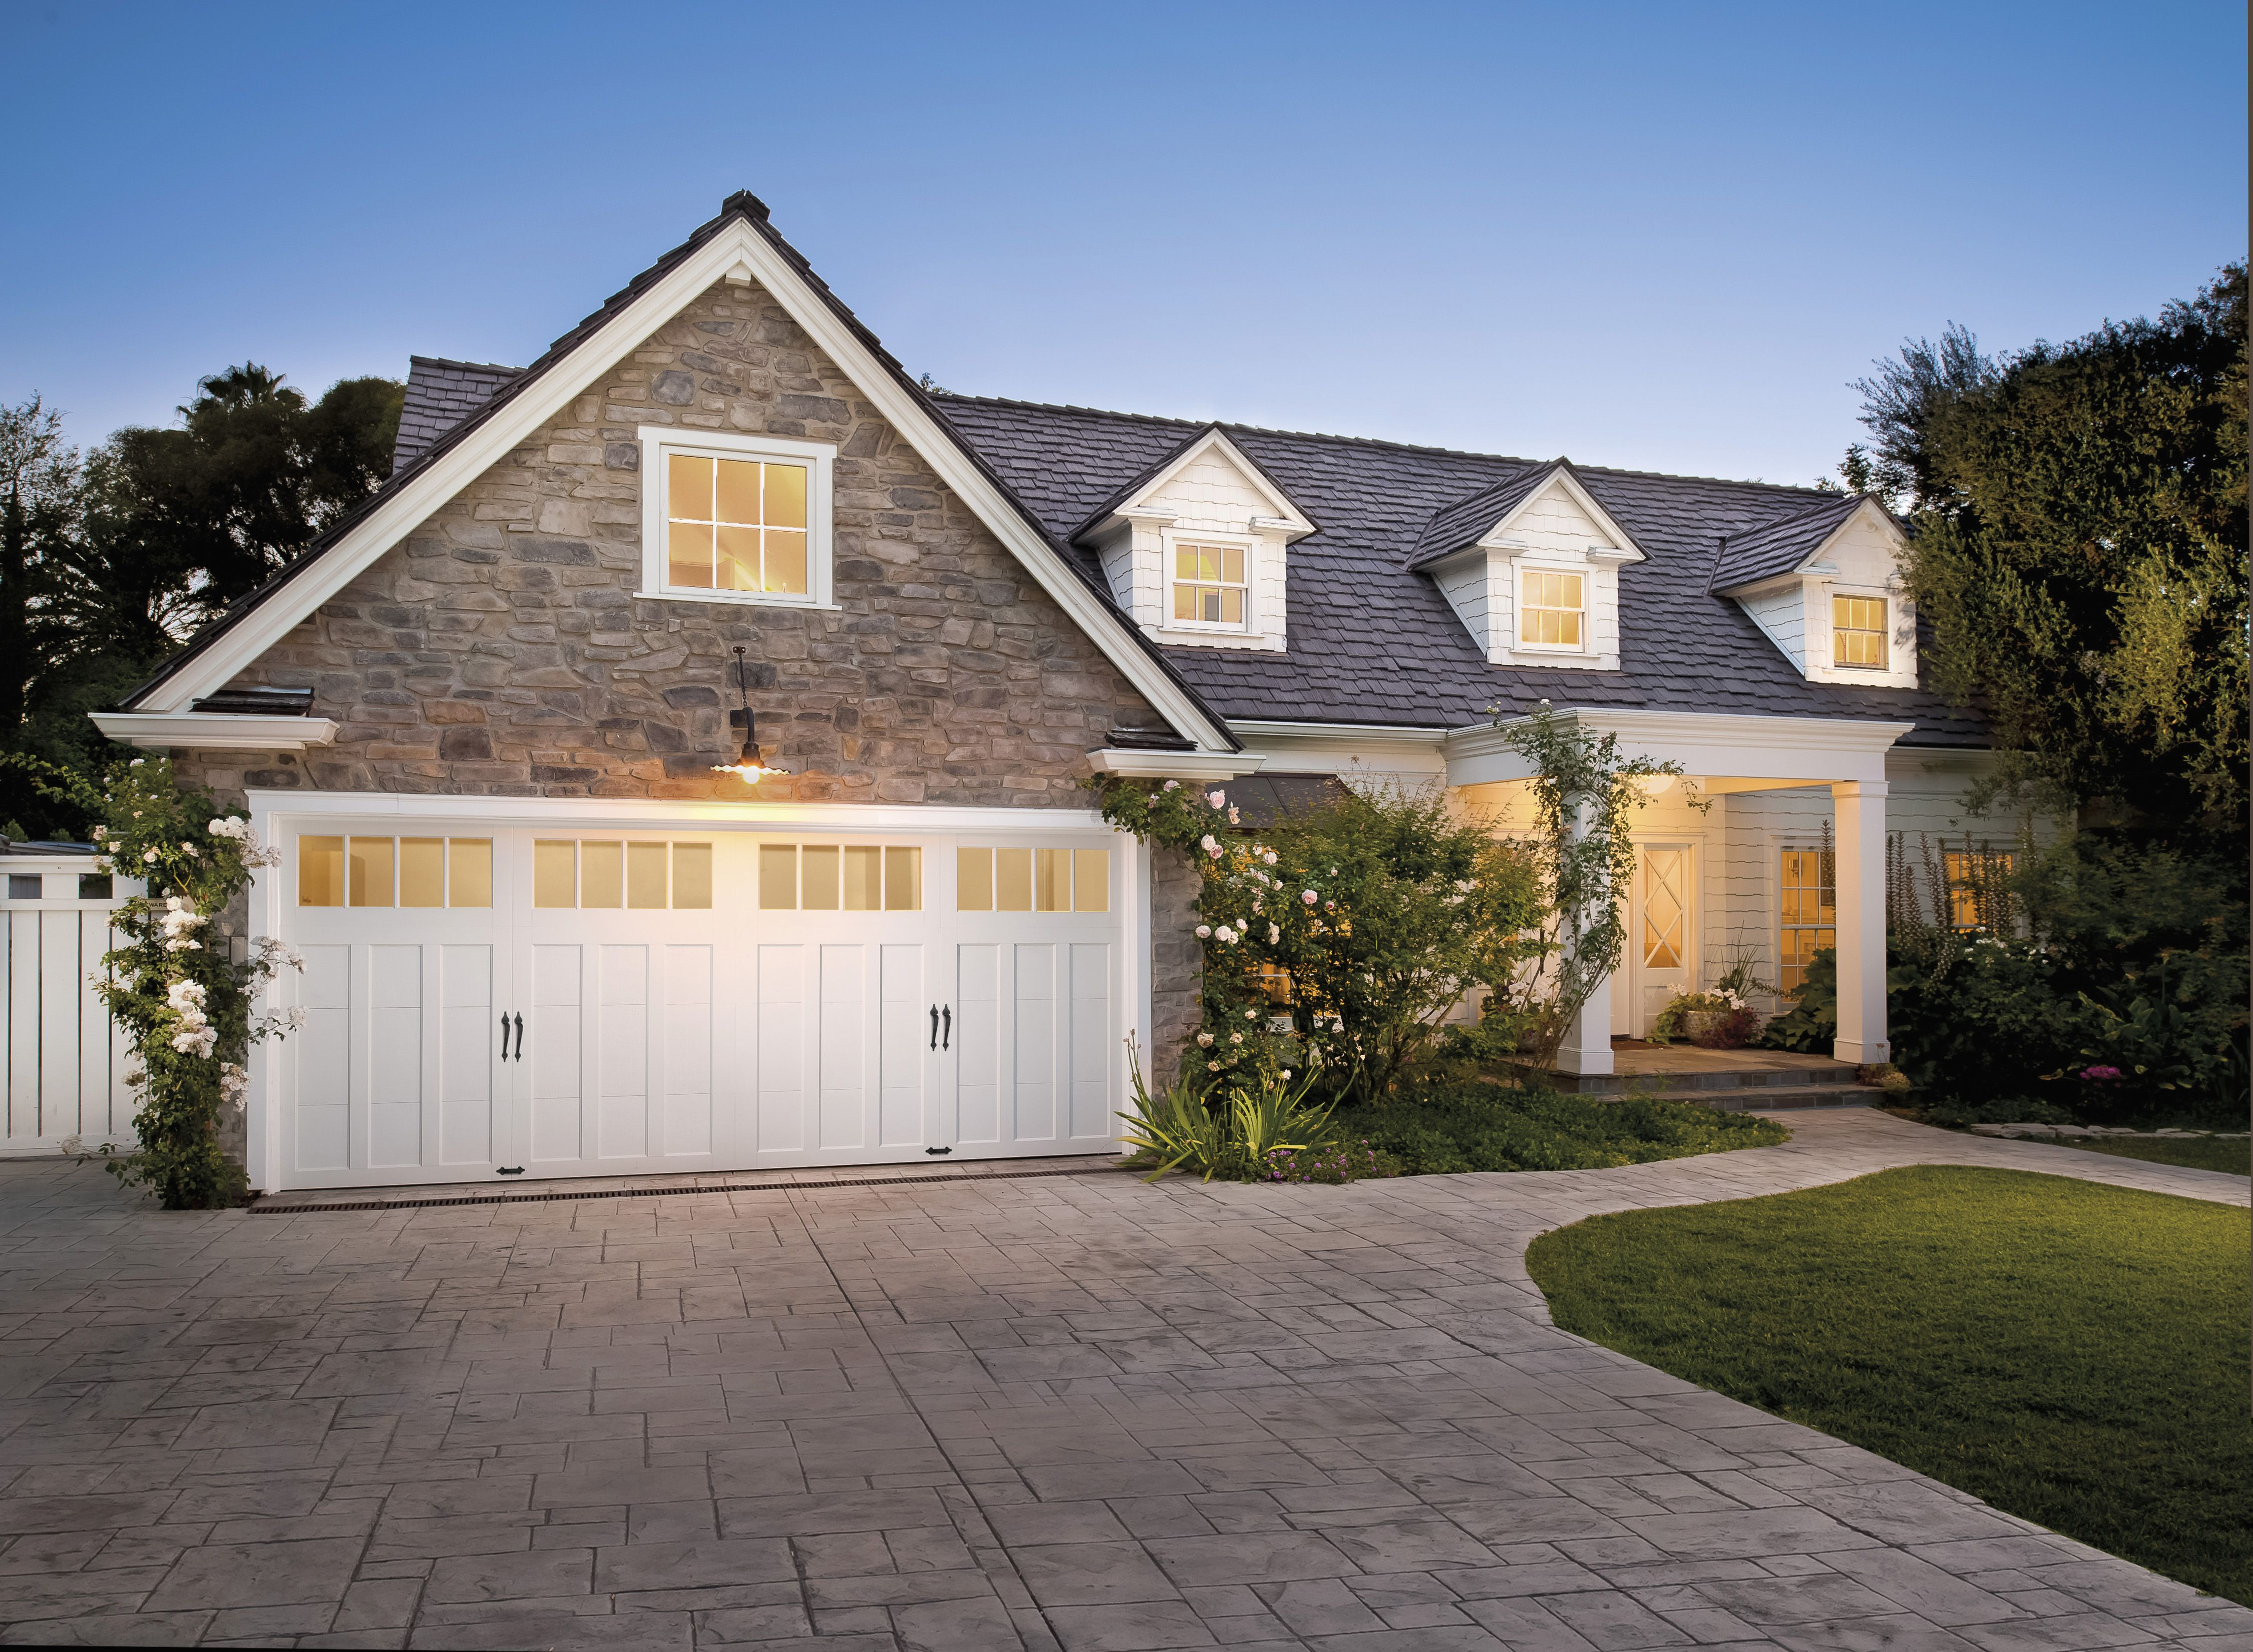 Coachman Collection Design 12 Rec 14 Windows Turns A Normal Traditional Home Int Carriage House Garage Doors Craftsman Style Garage Doors Garage Door Styles